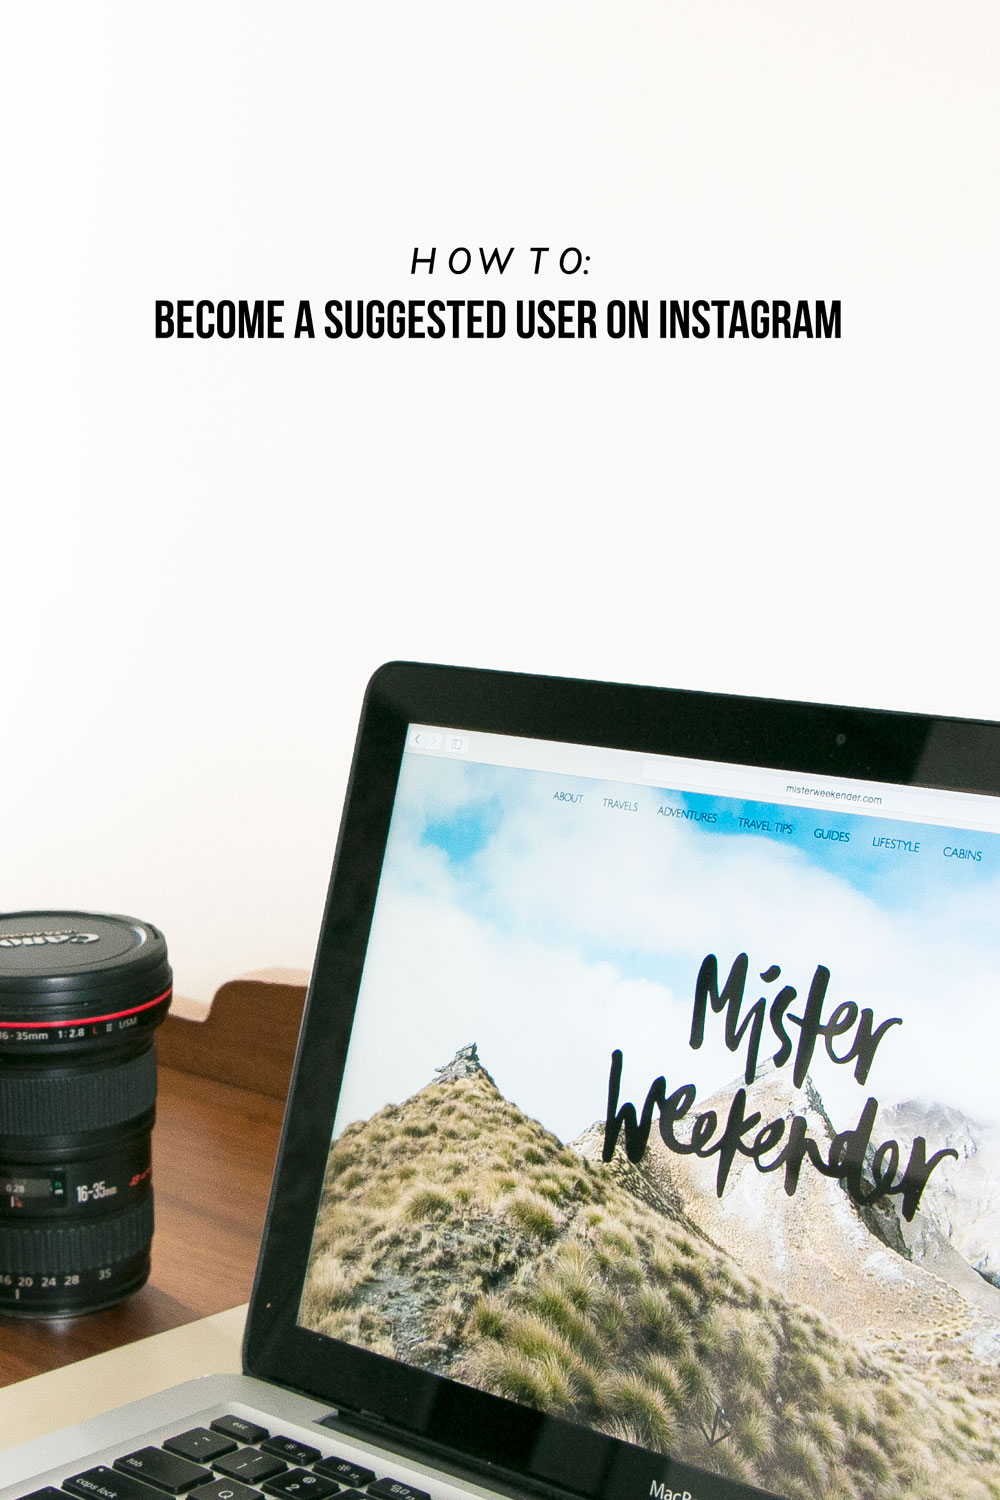 How to become a suggested user on Instagram